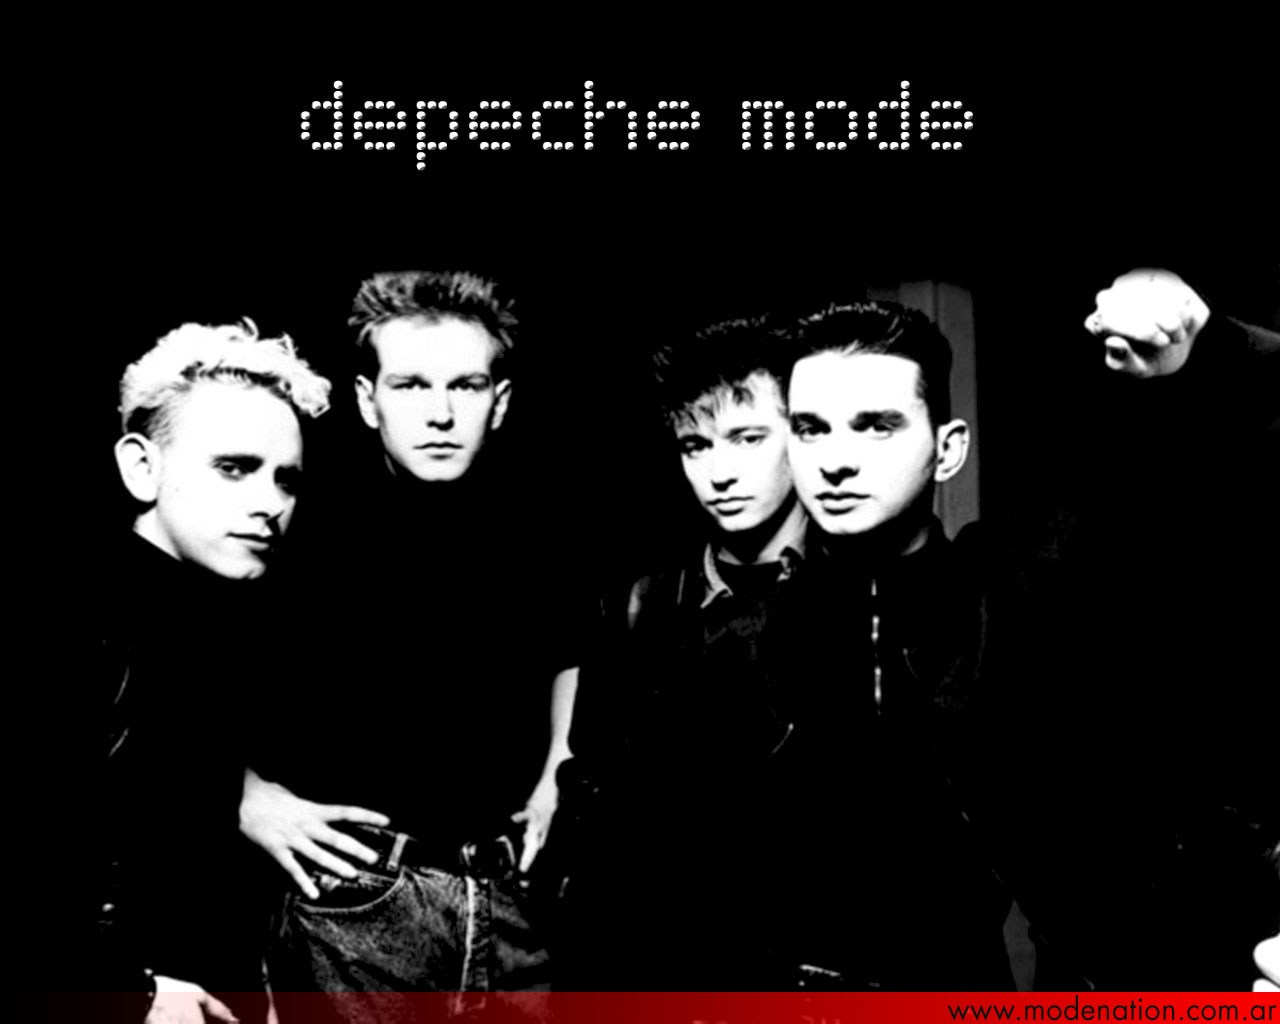 depeche mode photo 132 of 328 pics wallpaper photo 103983 theplace2. Black Bedroom Furniture Sets. Home Design Ideas